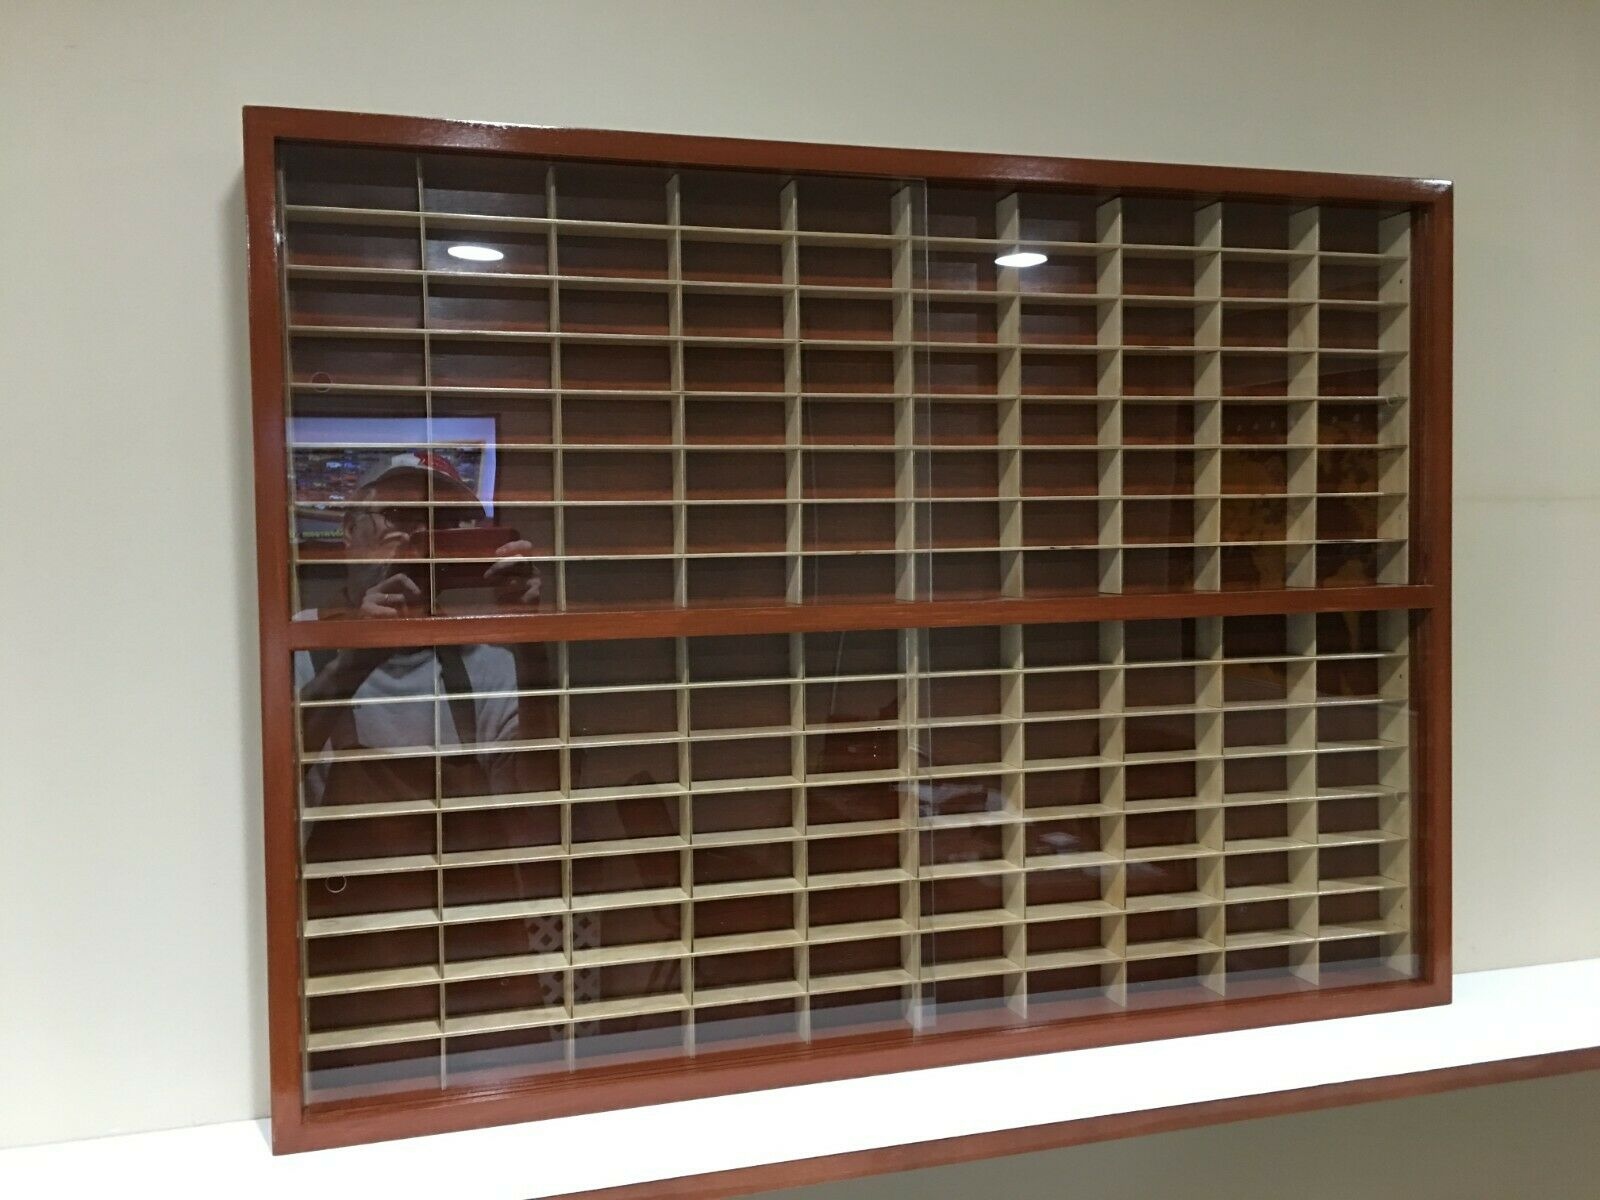 Display case cabinet for 1 64 diecast scale cars (hot wheels, matchbox)-160NWW-9